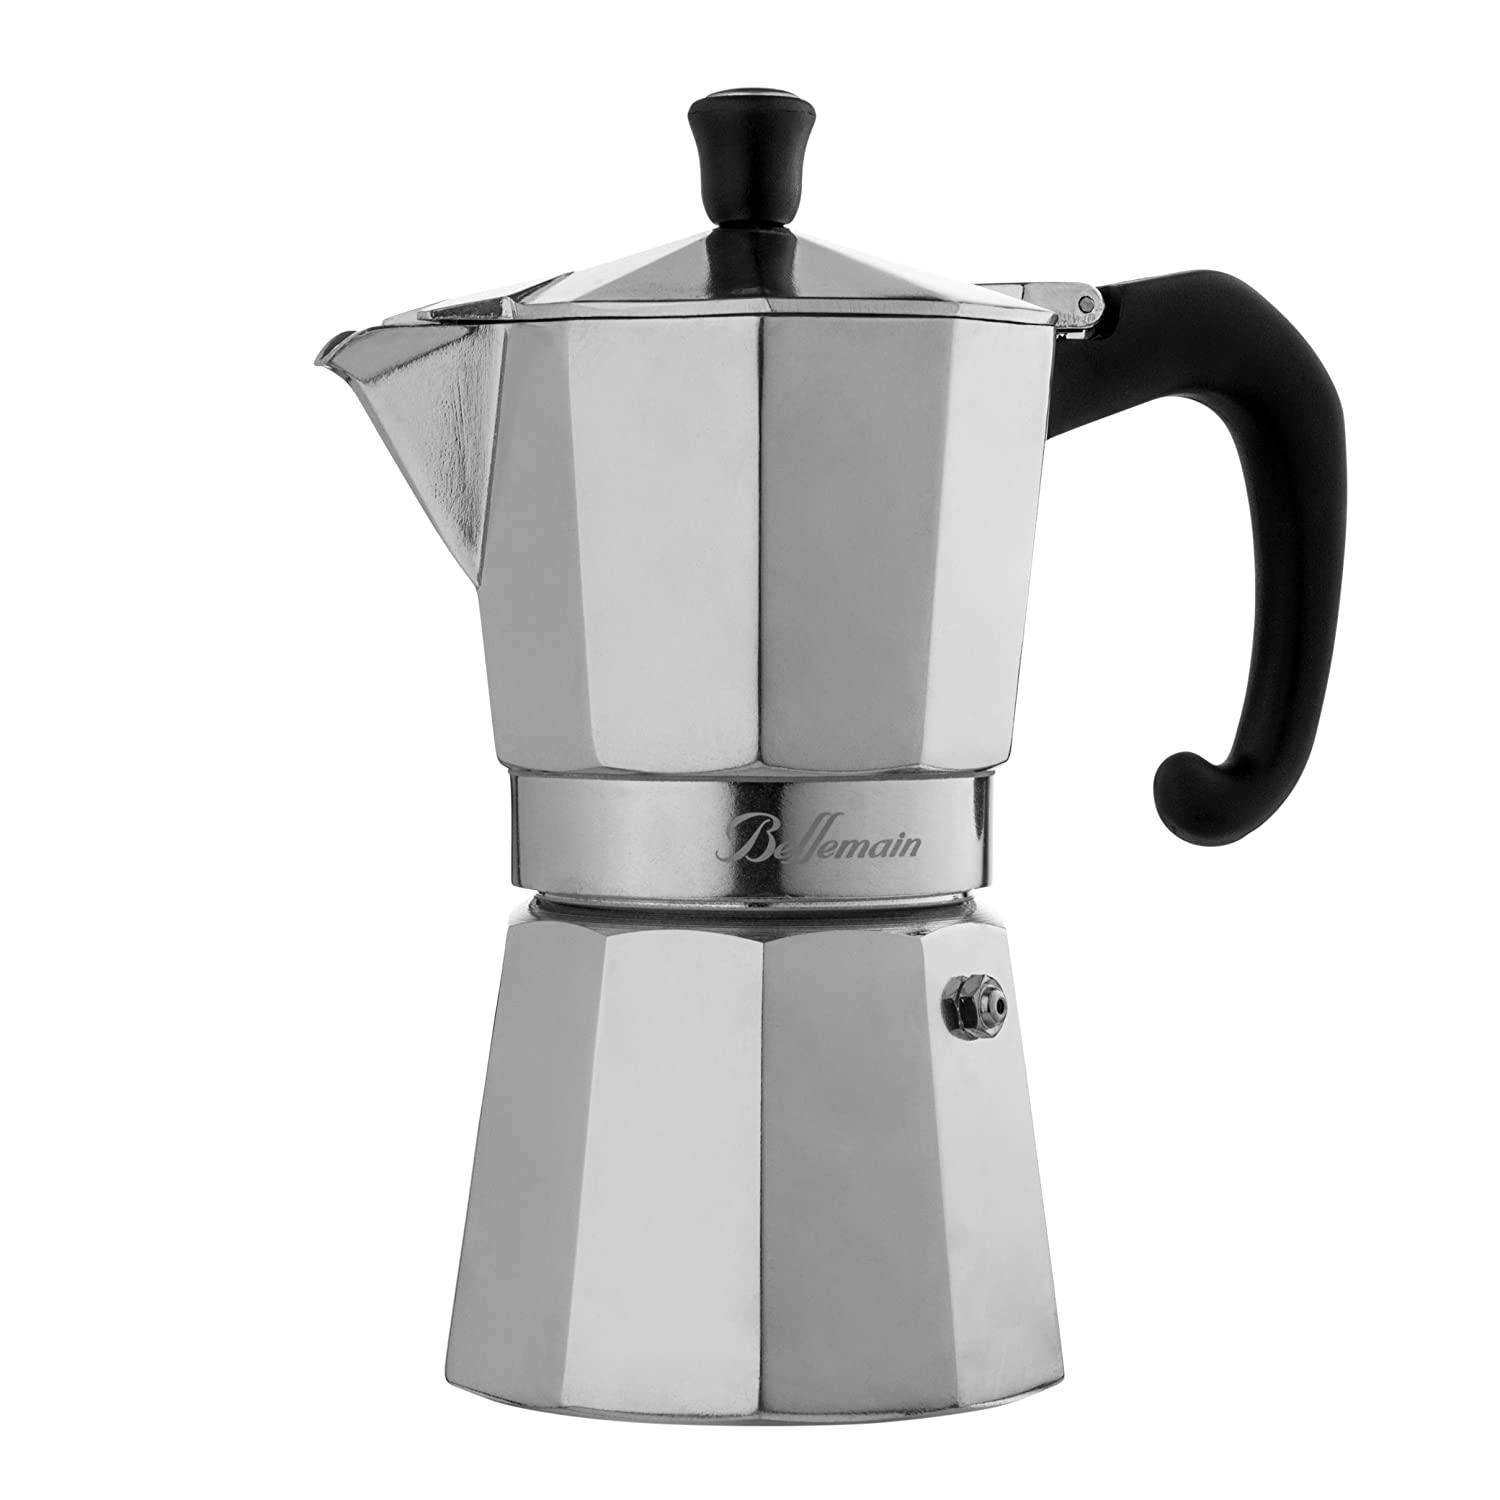 6 cup coffee maker reviews